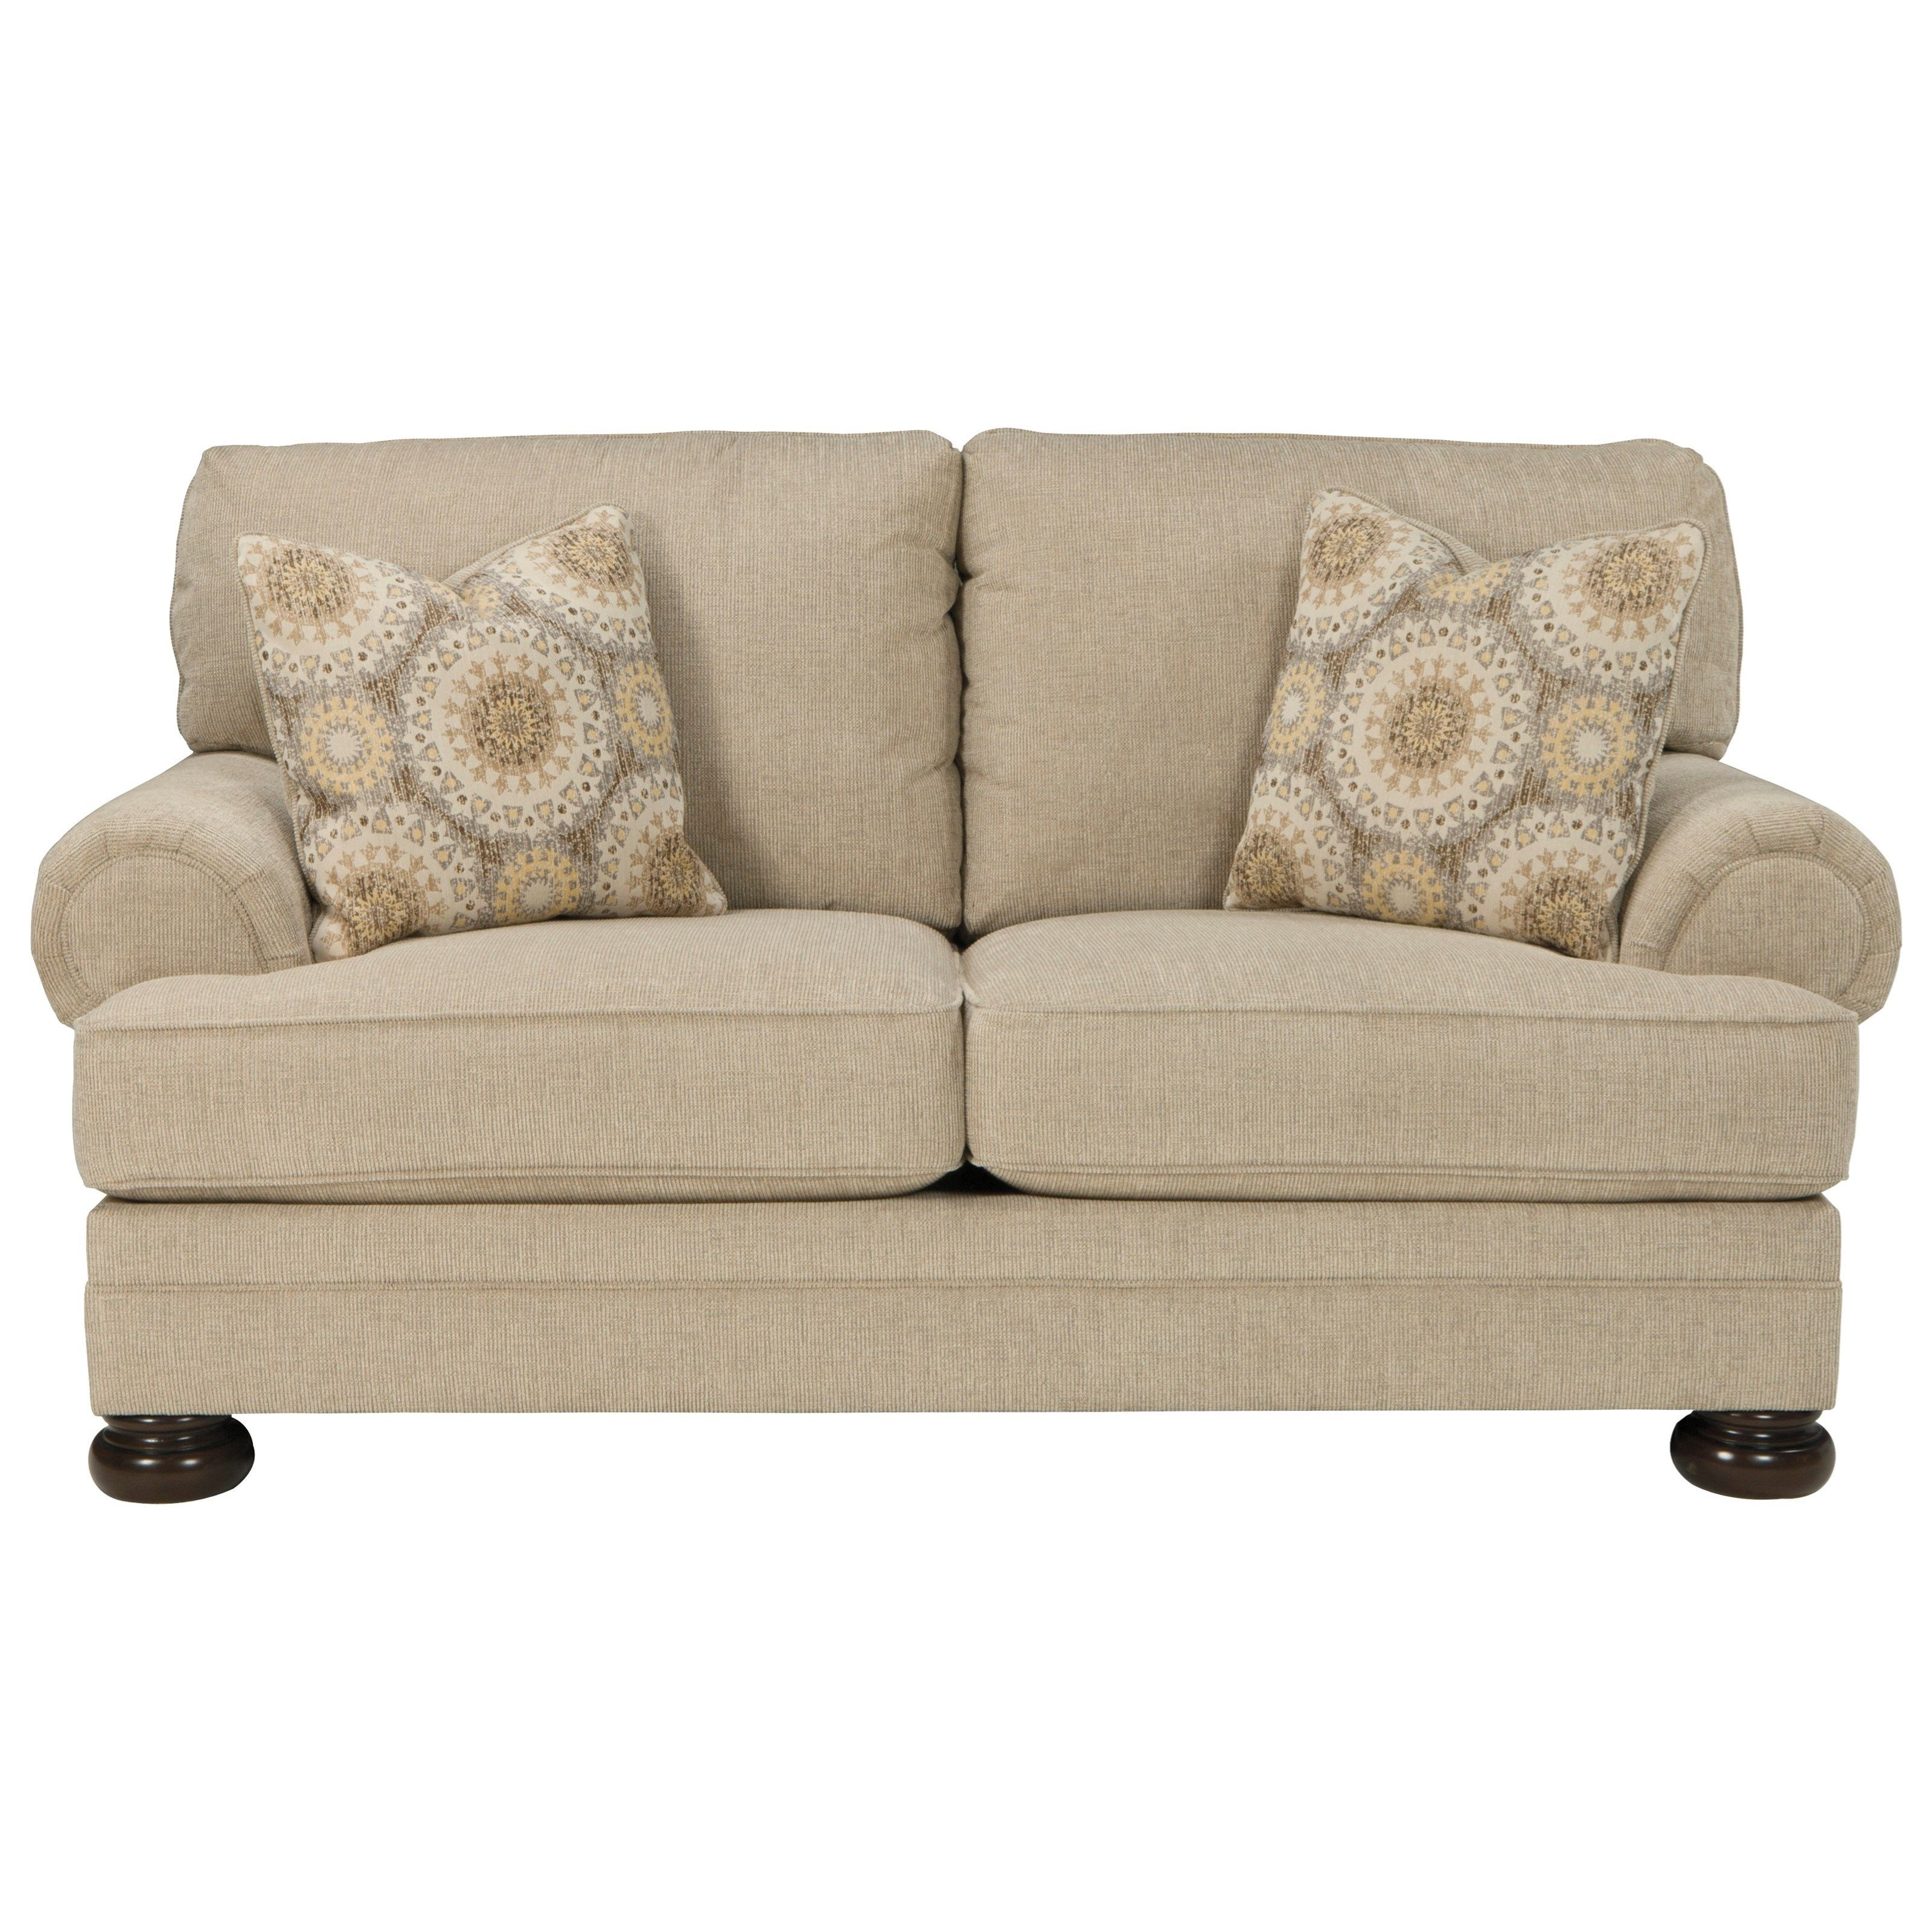 Quarry Hill Loveseat by Benchcraft Love seat, Ashley